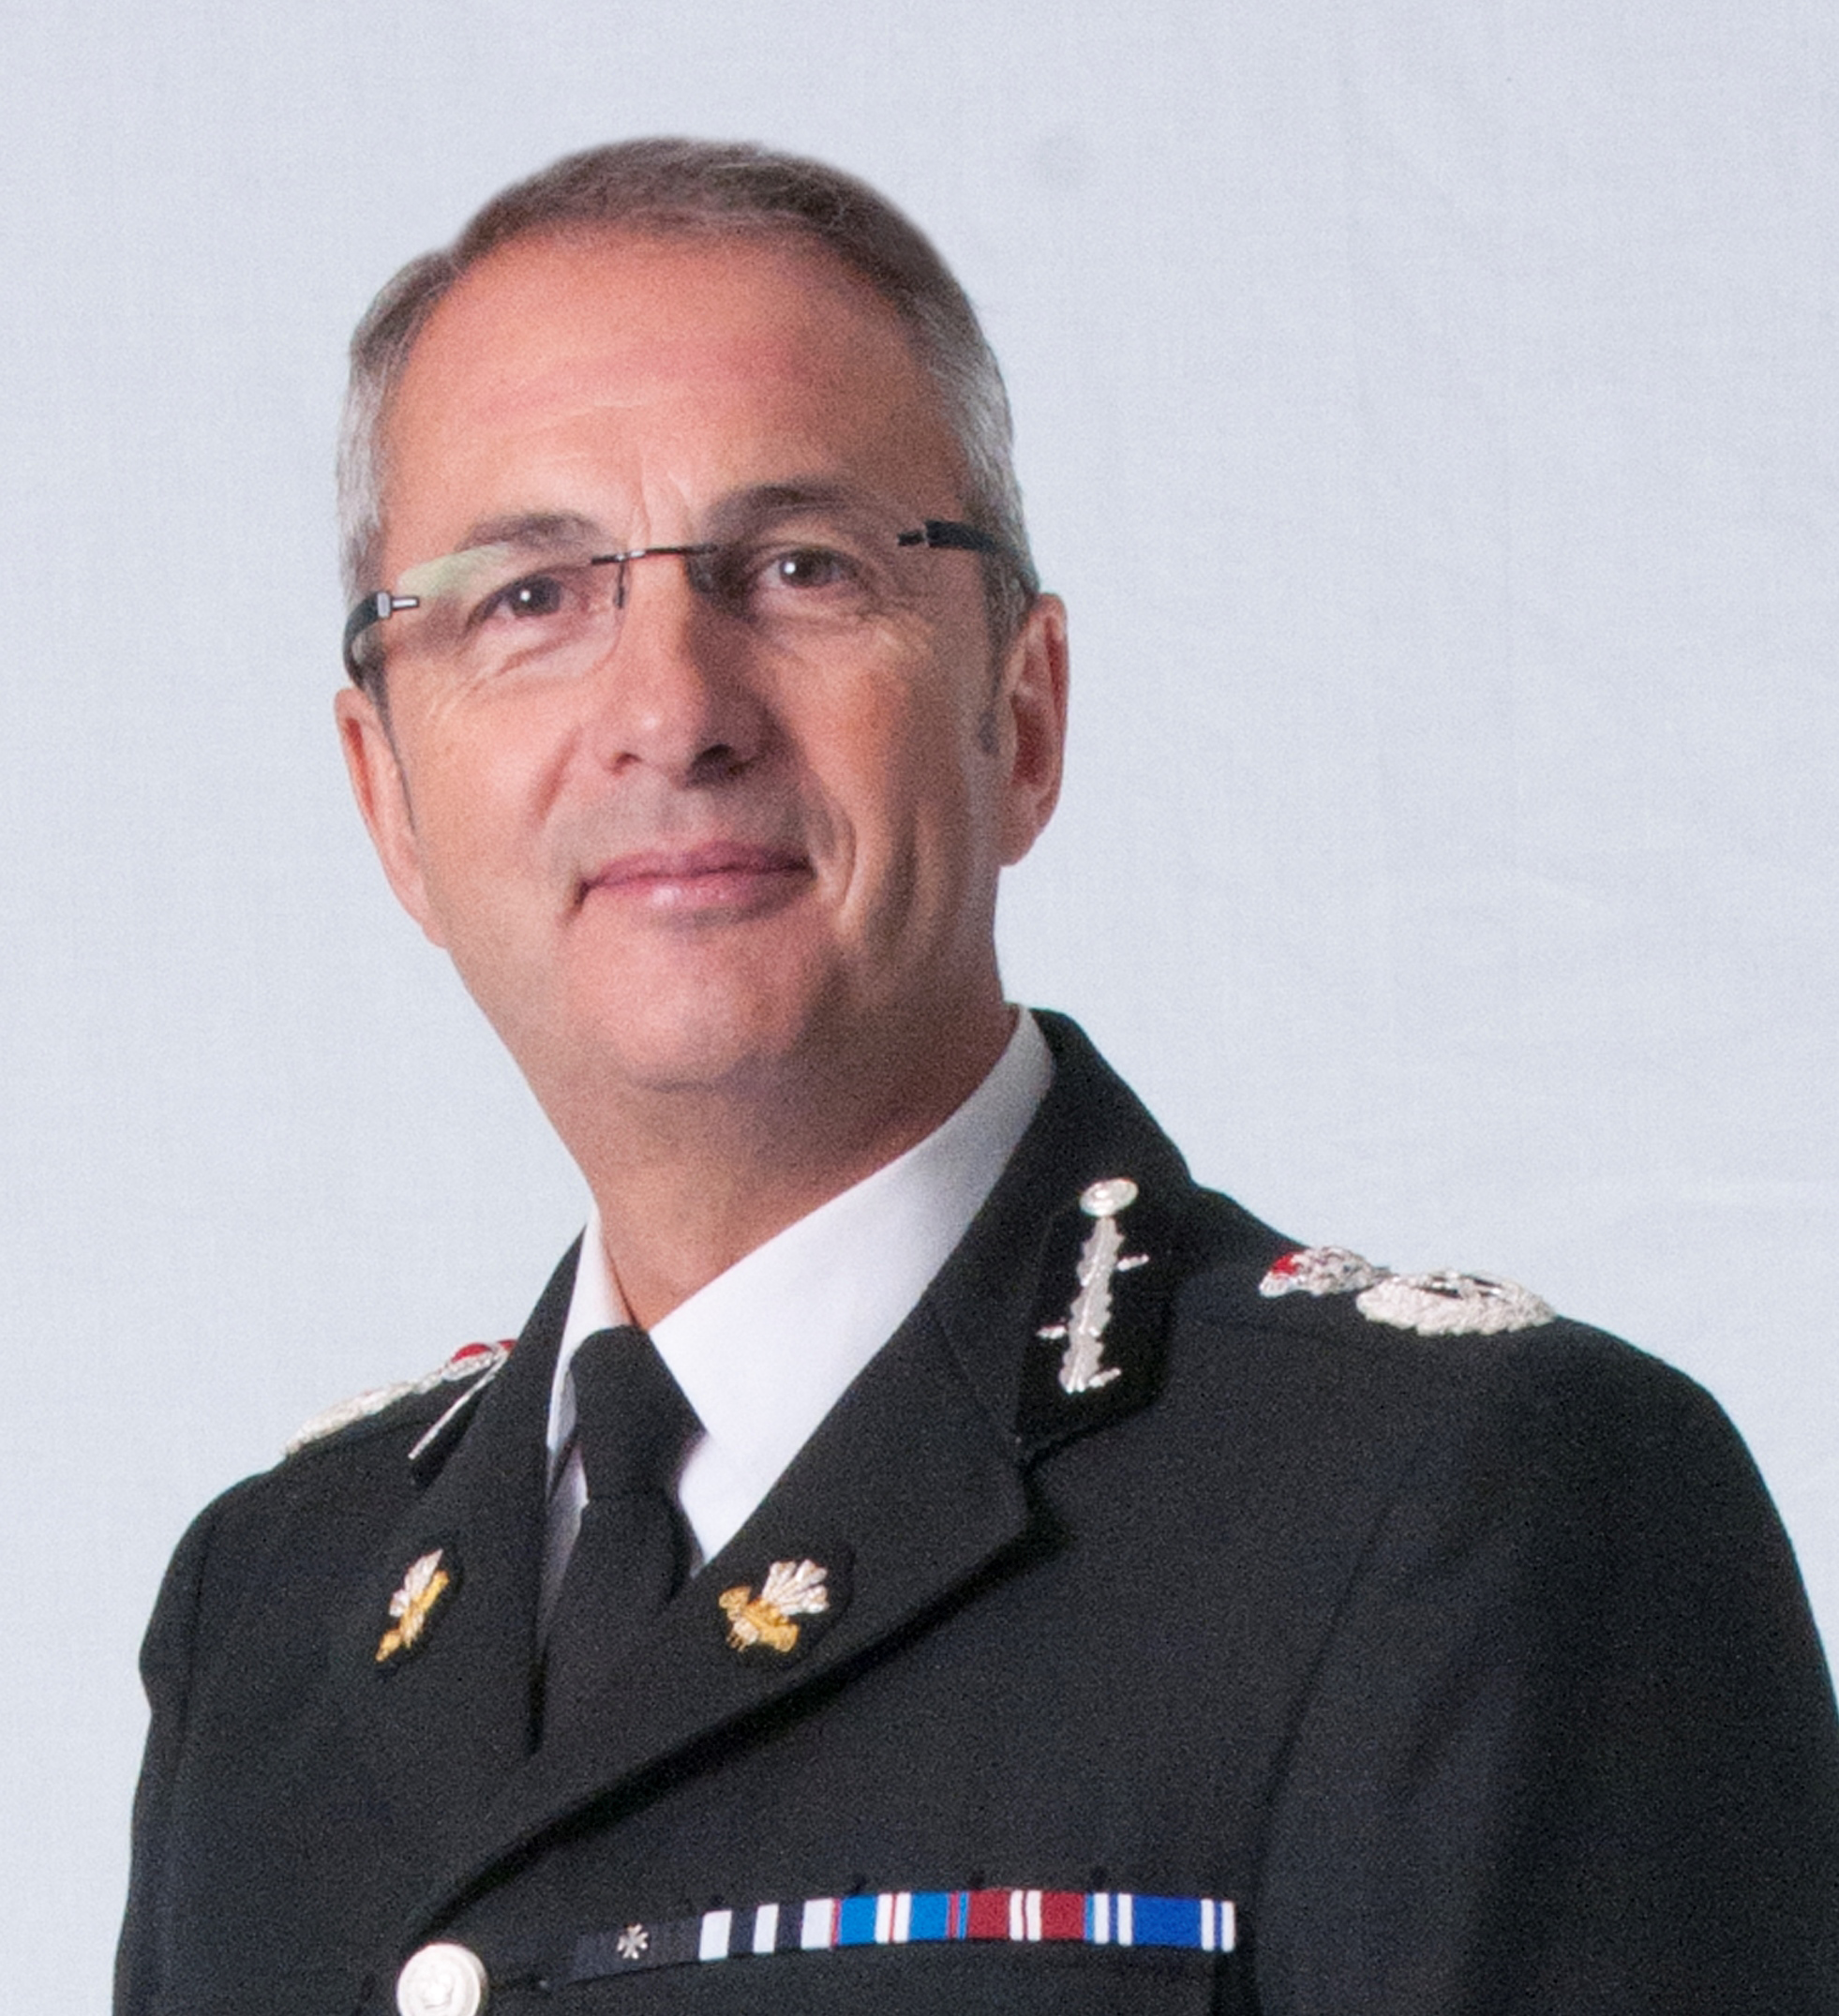 Chief Constable Peter Vaughan portrait photo